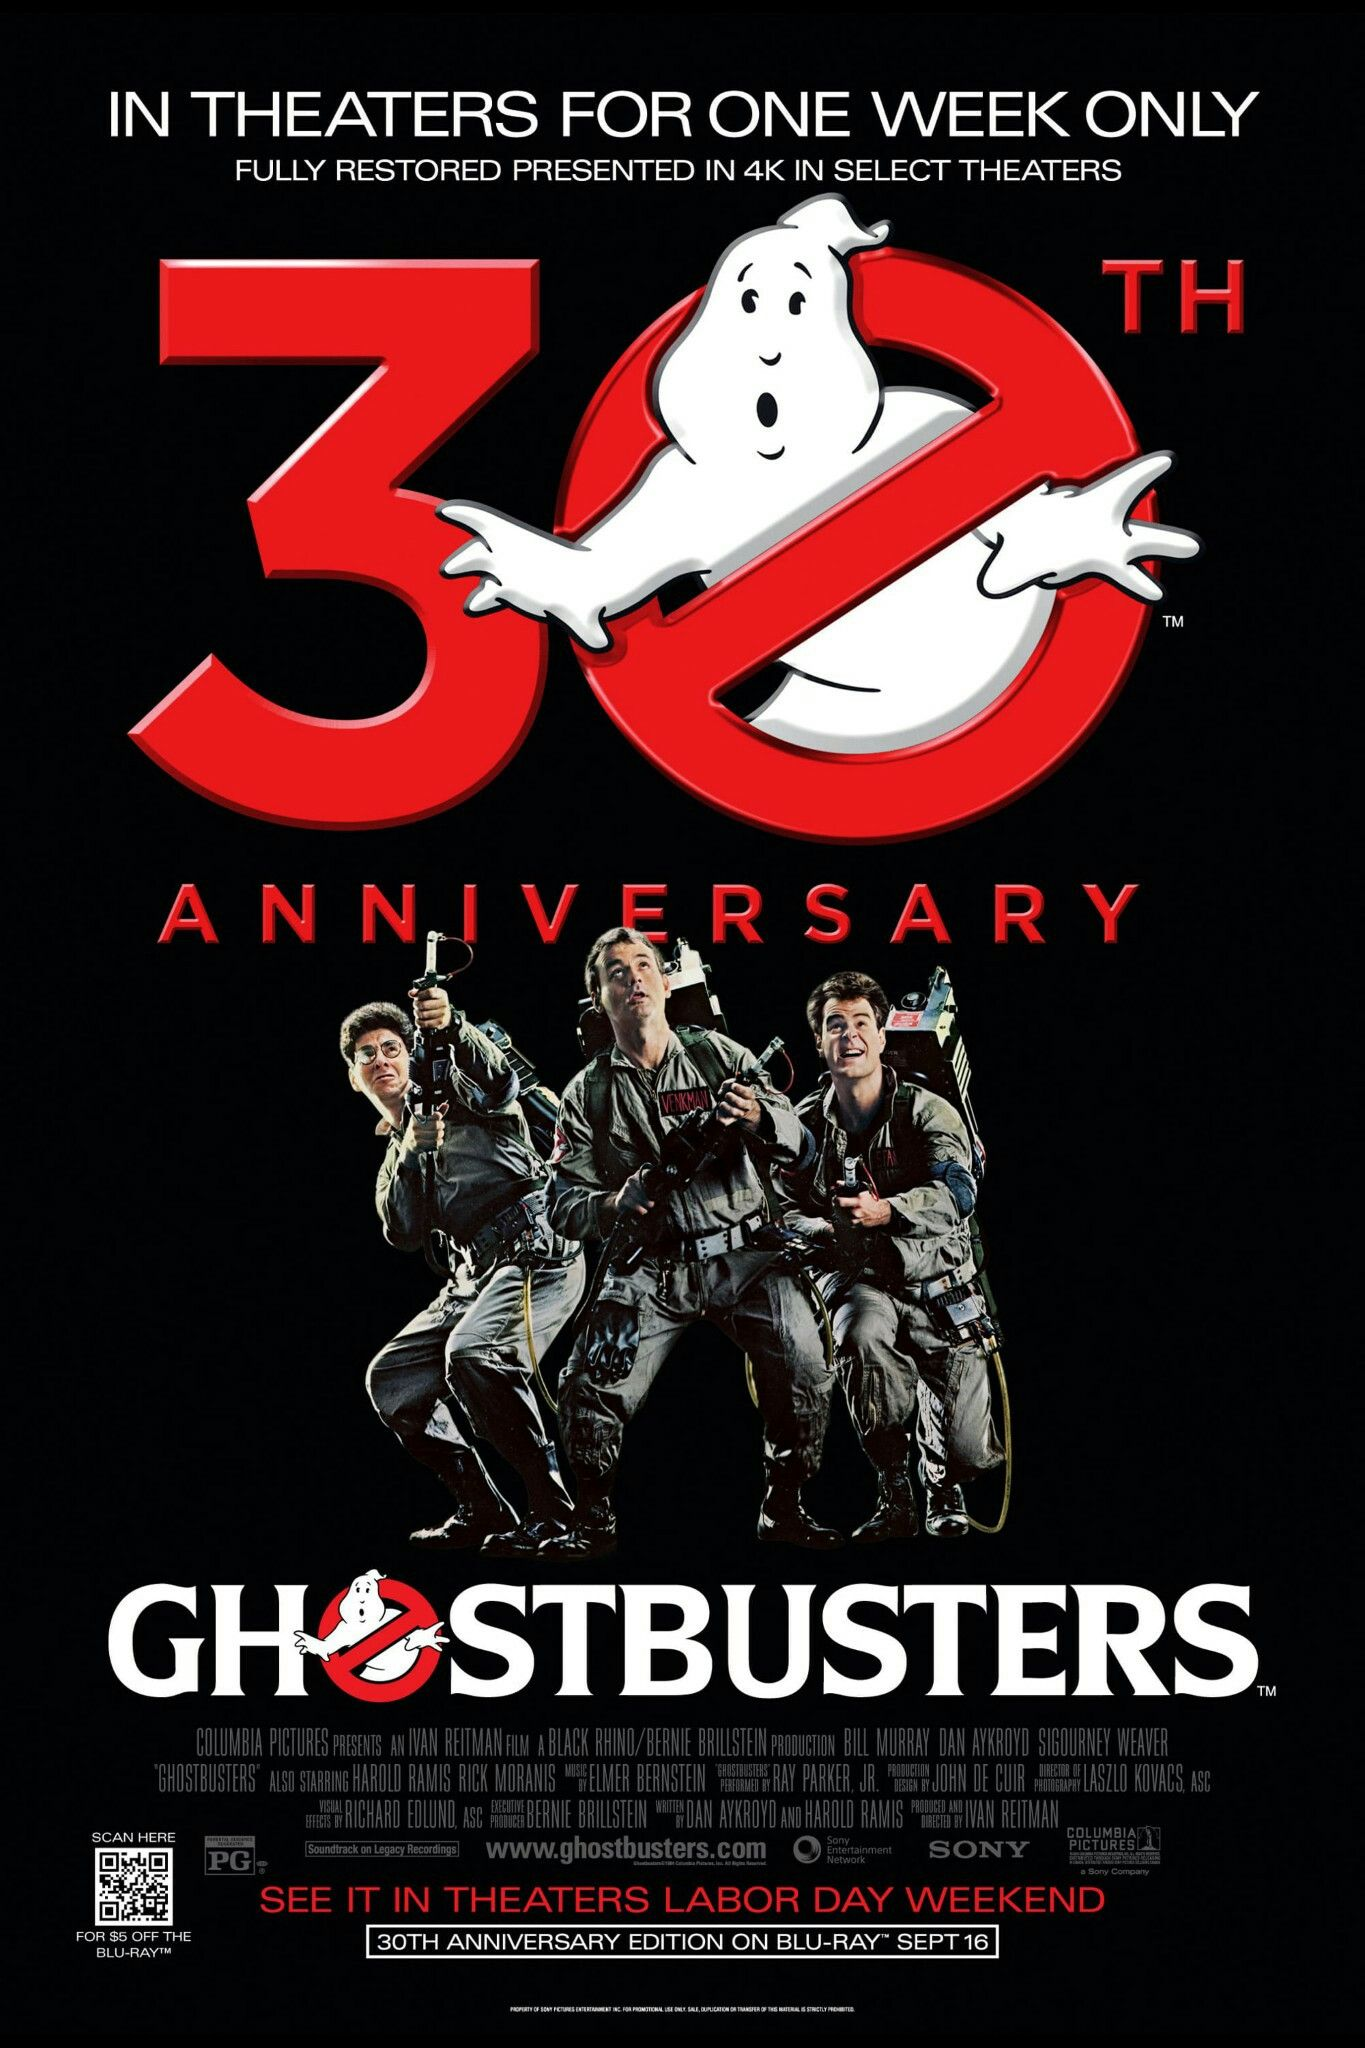 Ghostbusters 1984 Movie Poster Ghostbusters Fantastic Movie